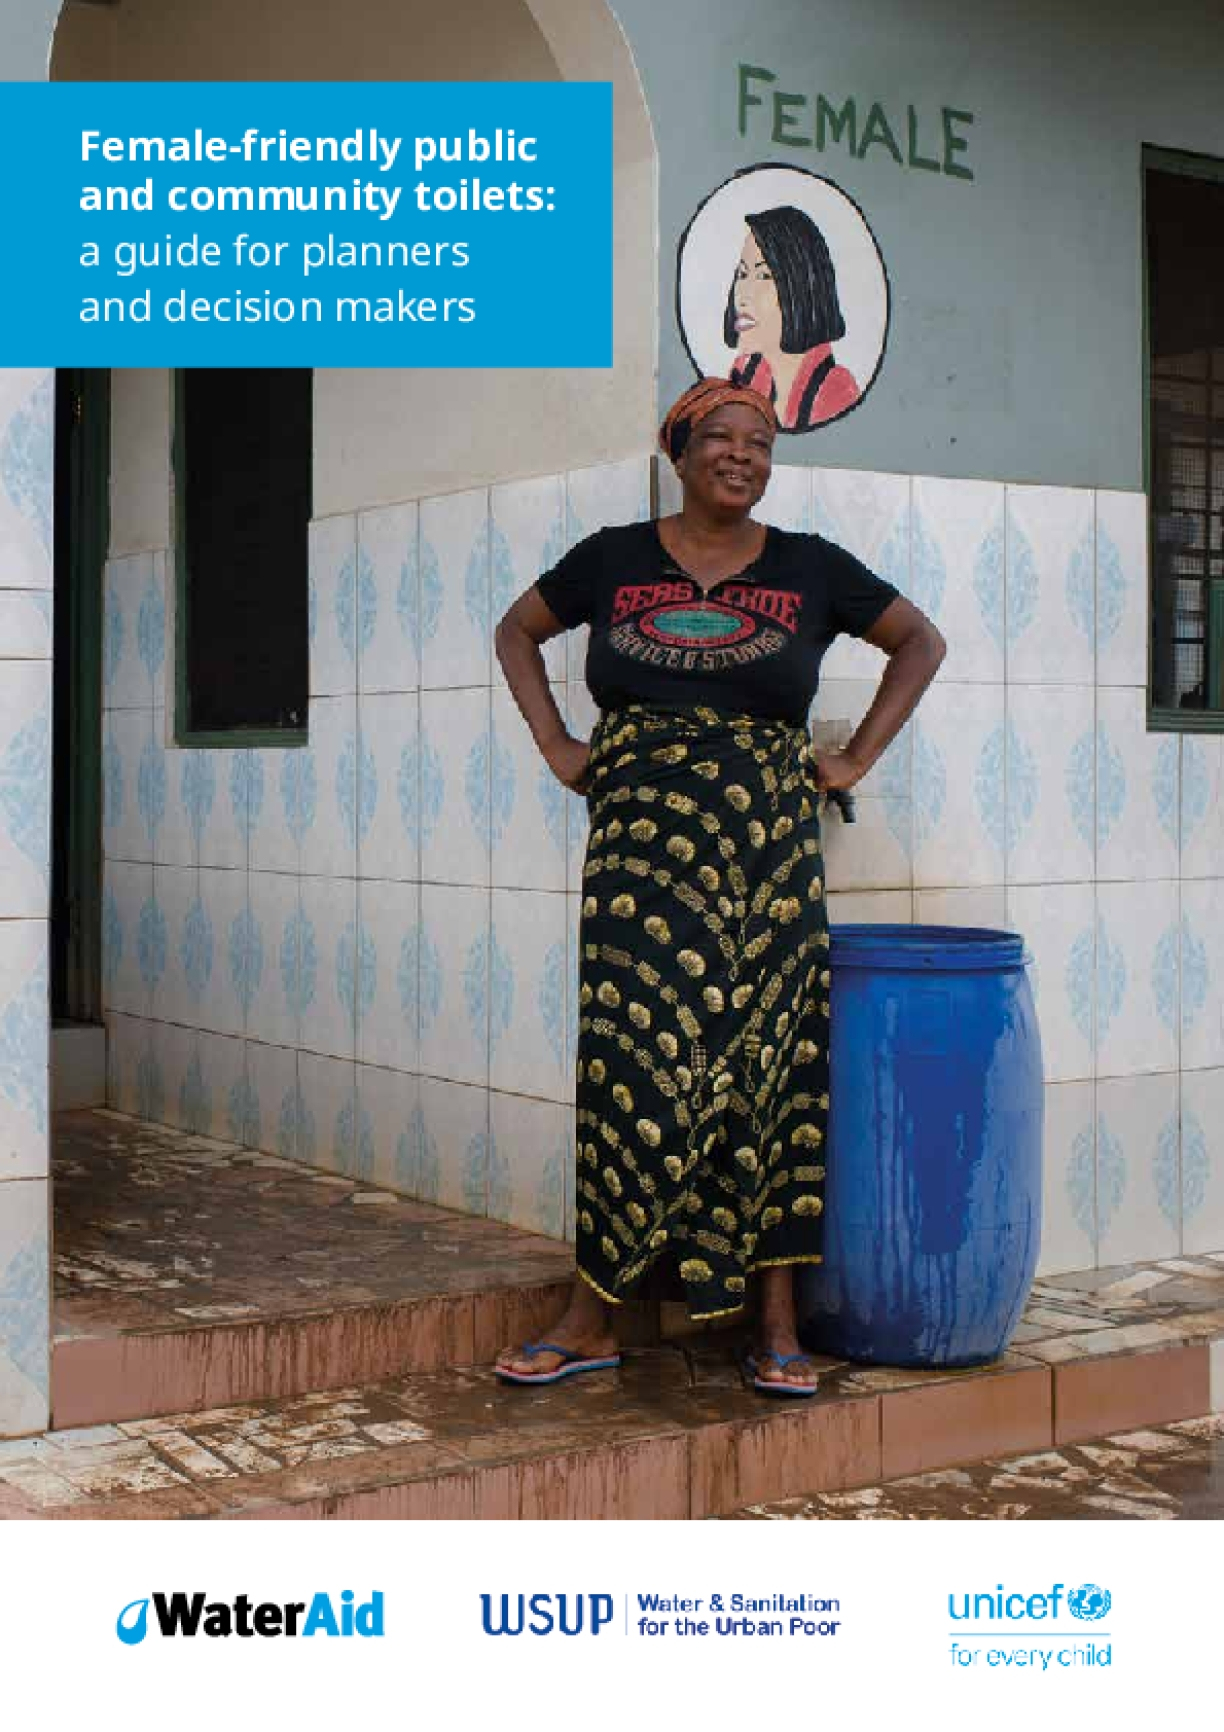 Female-friendly public and community toilets: a guide for planners and decision makers